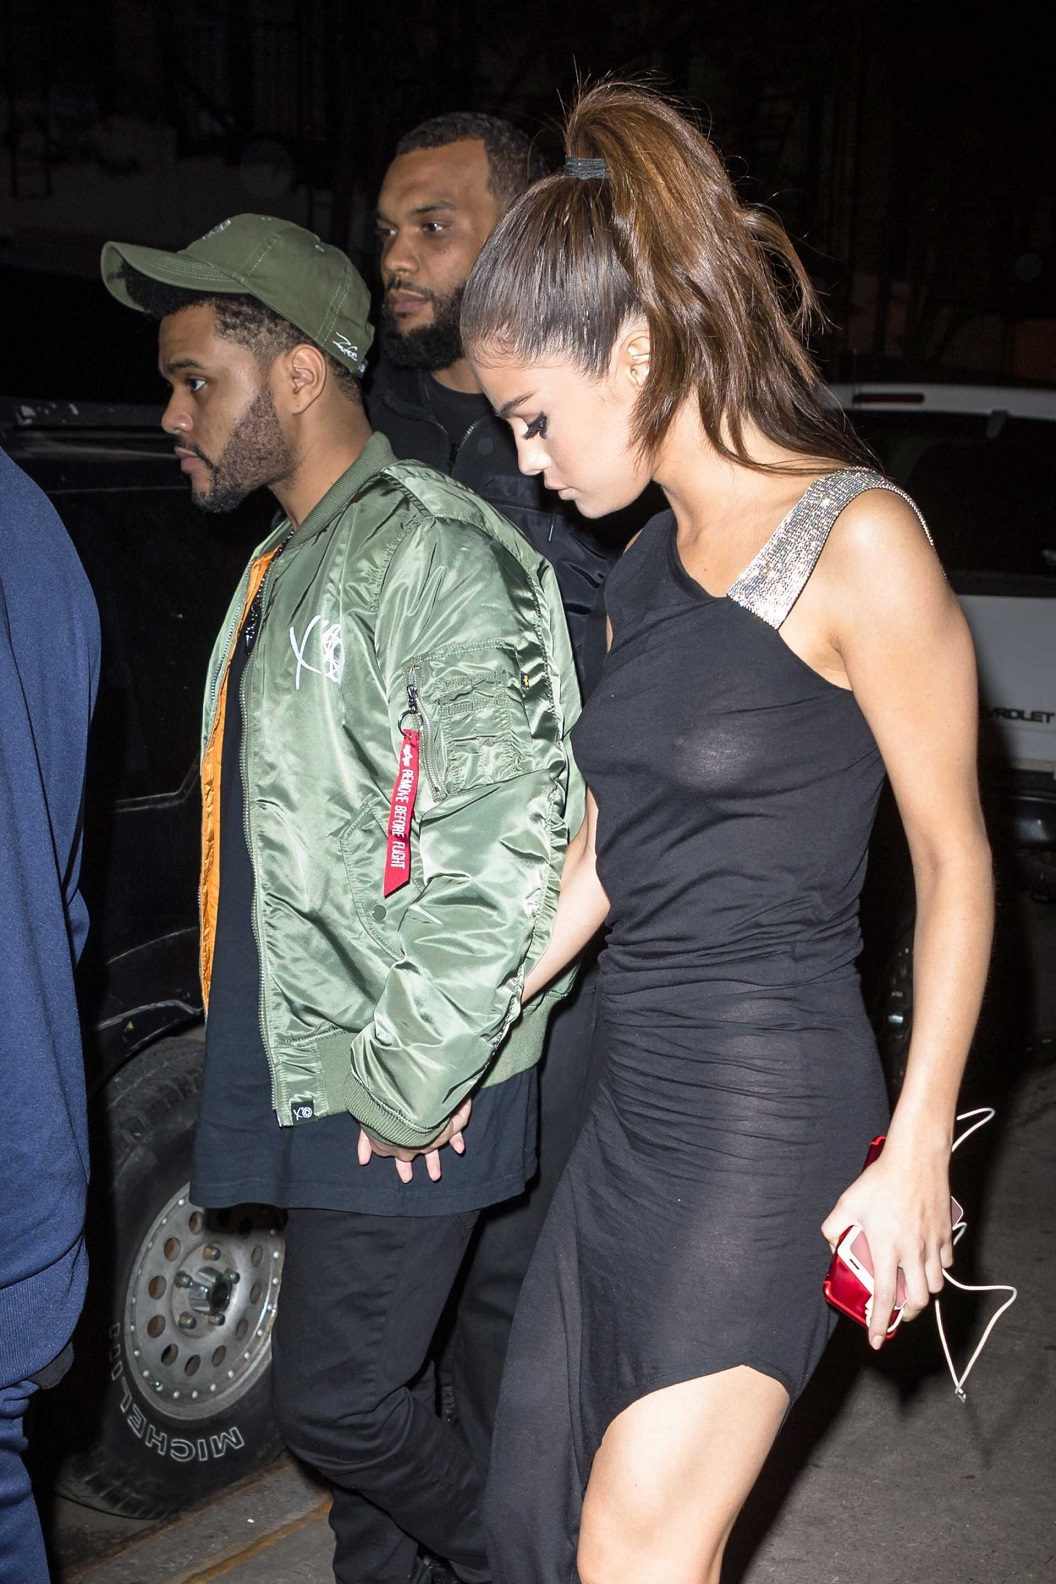 Selena Gomez shows off nipples in gown with The Weeknd